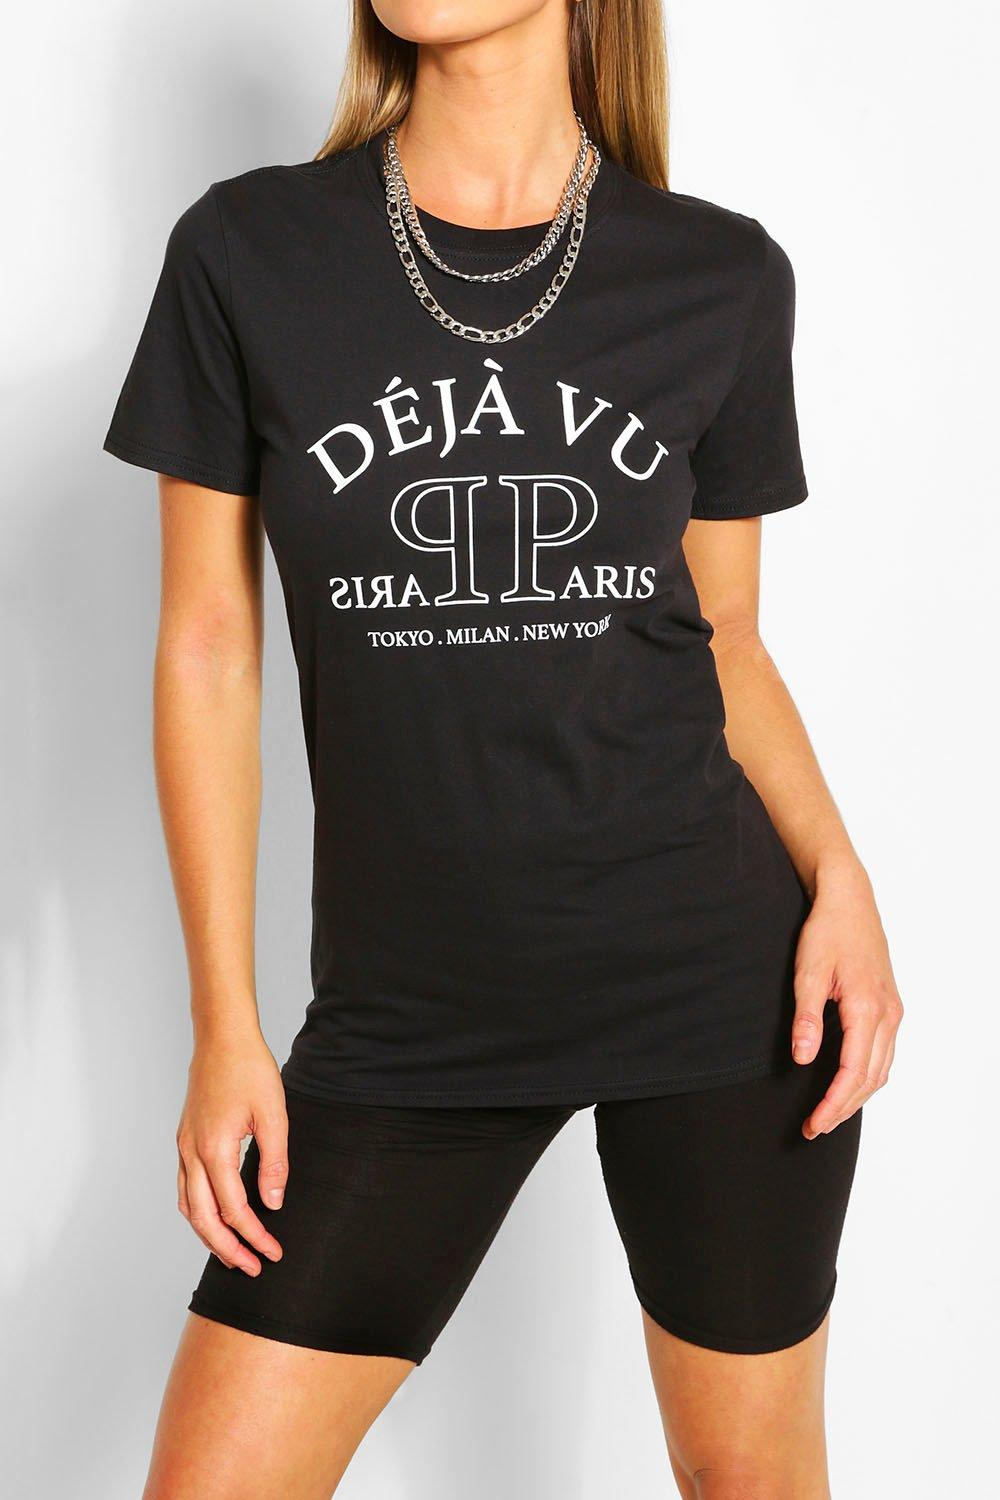 Deja Vu Mannen T shirt | Spreadshirt